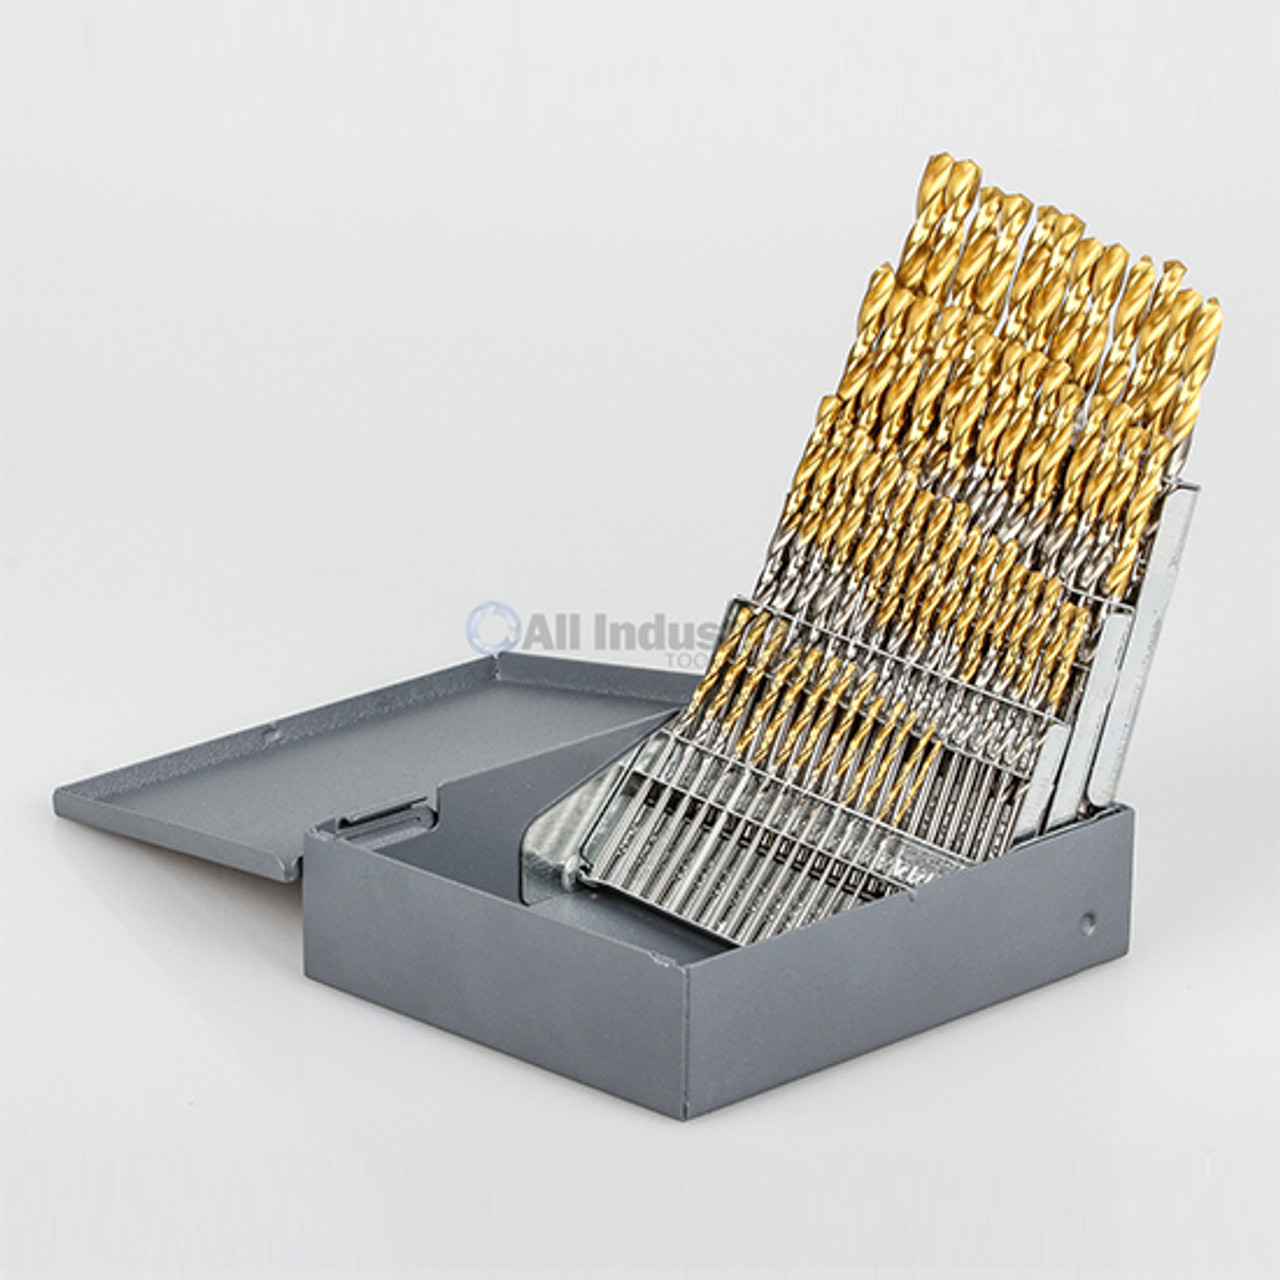 Yg1 d2gp187set 56pc cobalt drill set wire 1 56 straight shank yg1 d2gp187set 56pc cobalt drill set wire 1 56 straight shank split point greentooth Images